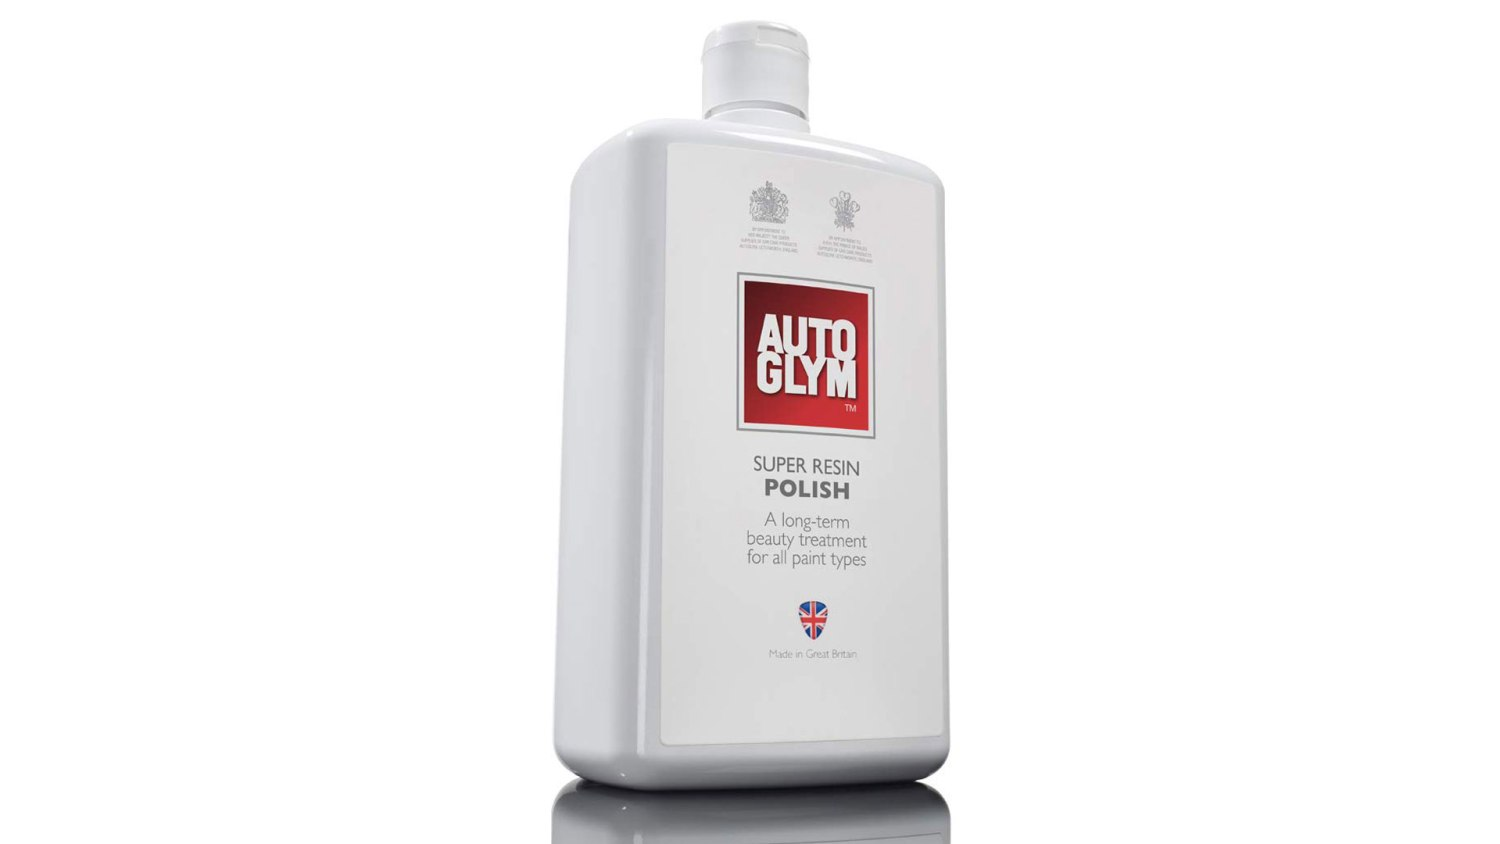 Prime Day Autoglym Super Resin Polish